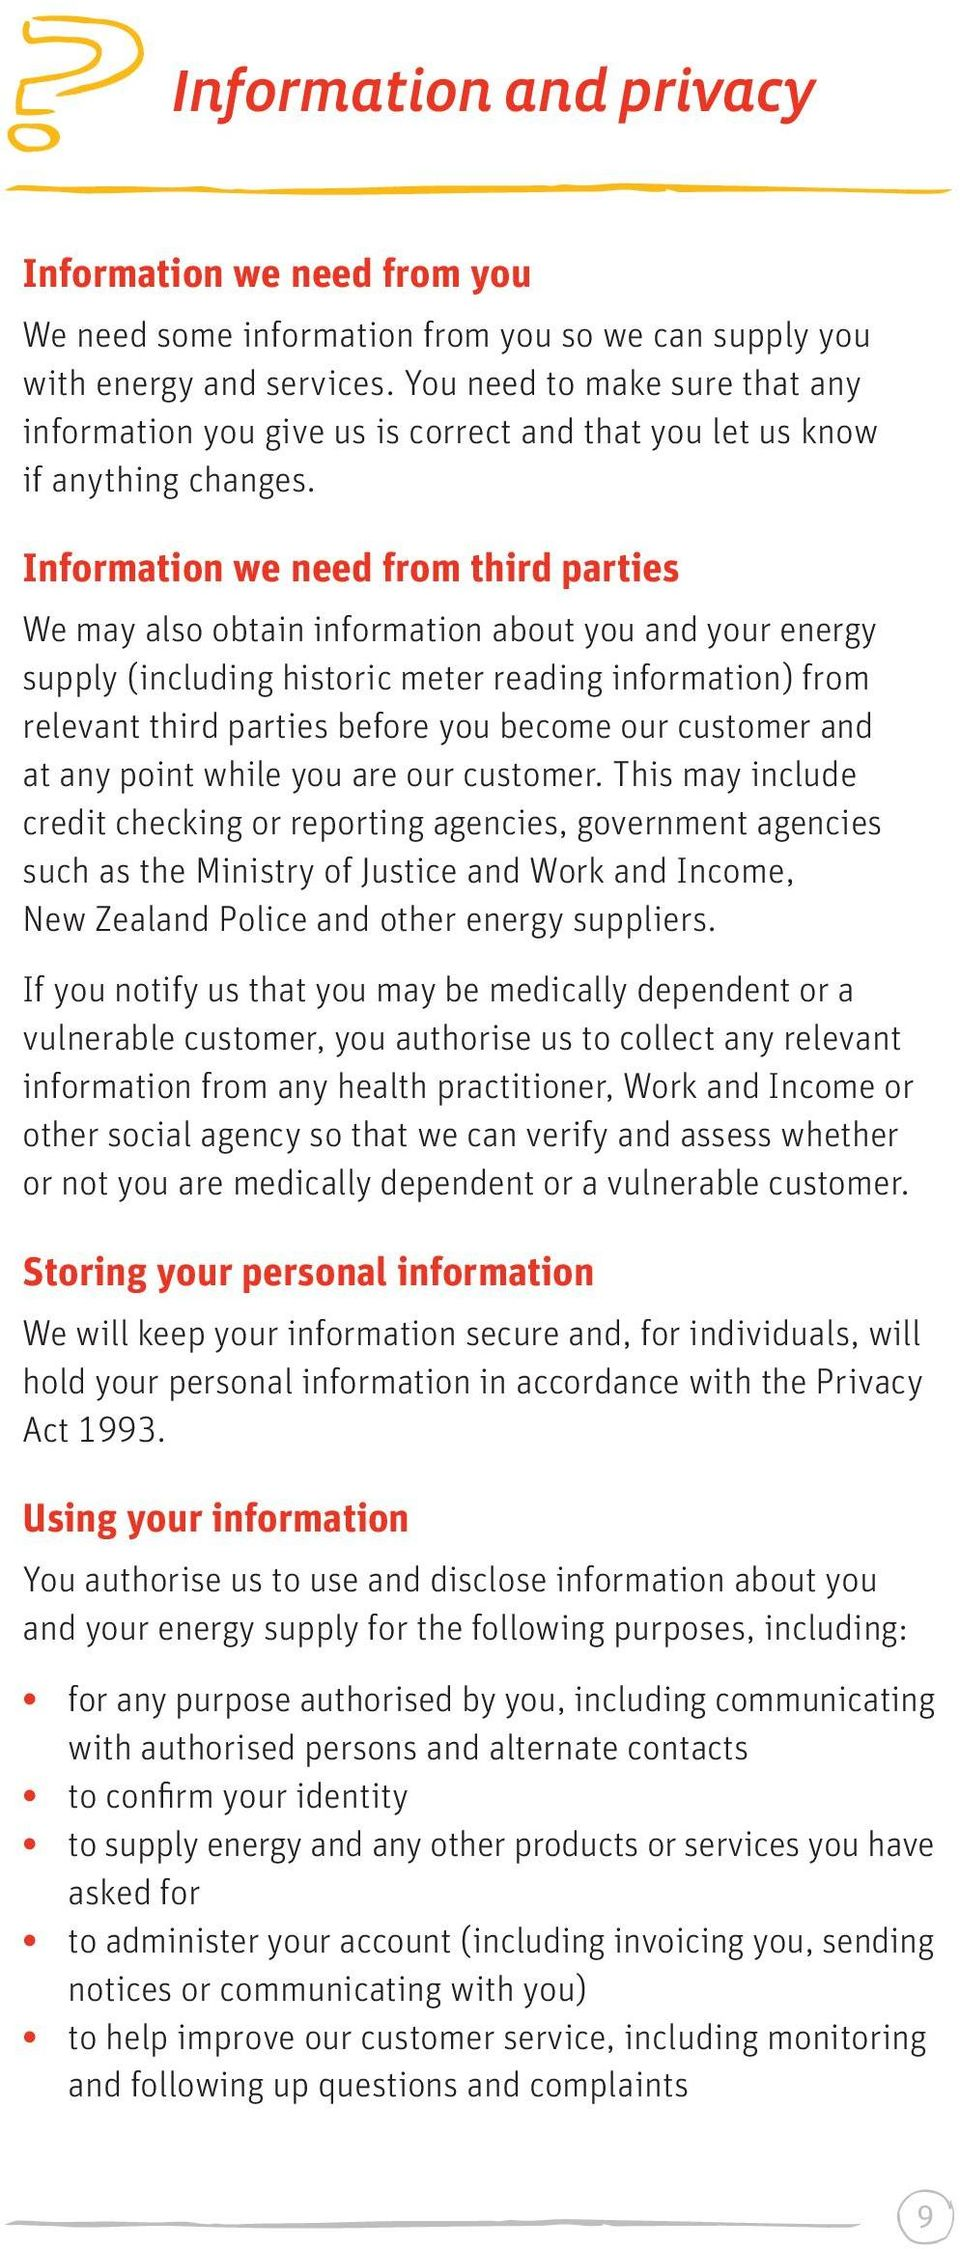 Information we need from third parties We may also obtain information about you and your energy supply (including historic meter reading information) from relevant third parties before you become our